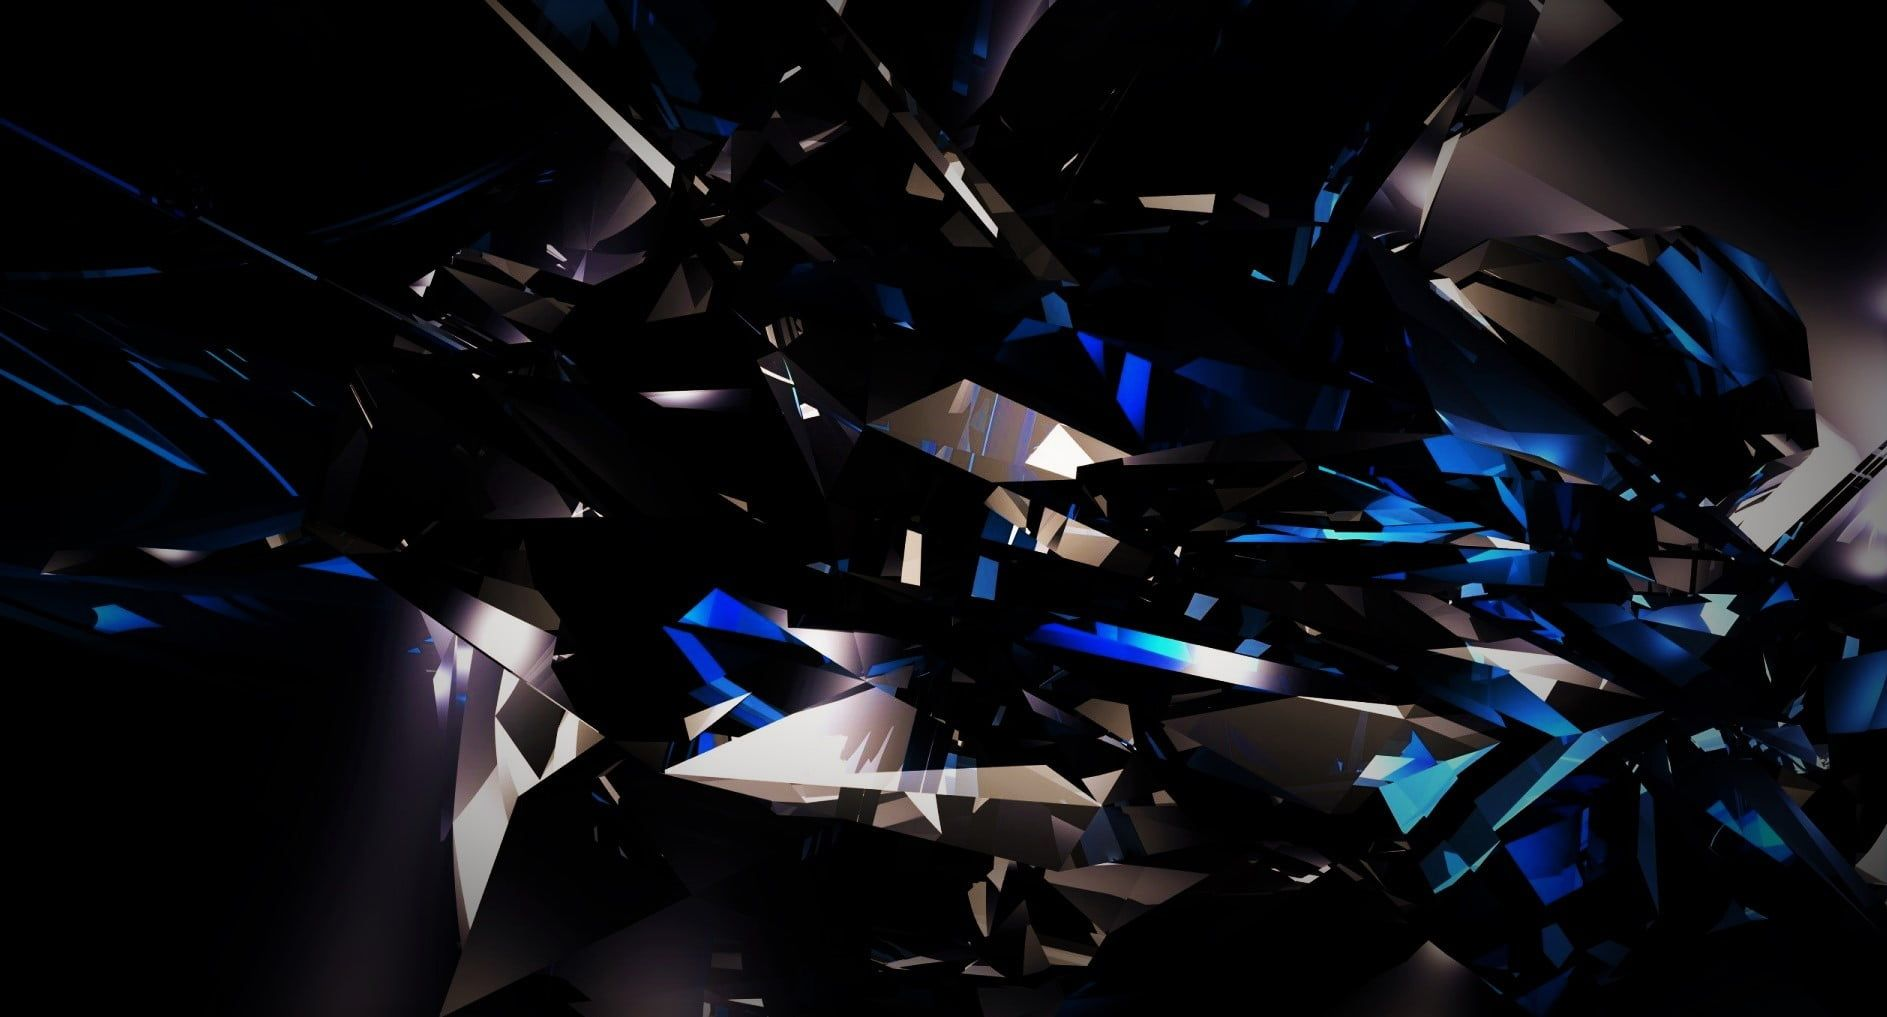 Blue And Black Abstract Illustration Black Dark Abstract 3d Shards Glass Blue Bright 720p Wall Black And Blue Wallpaper Dark Wallpaper Black Abstract